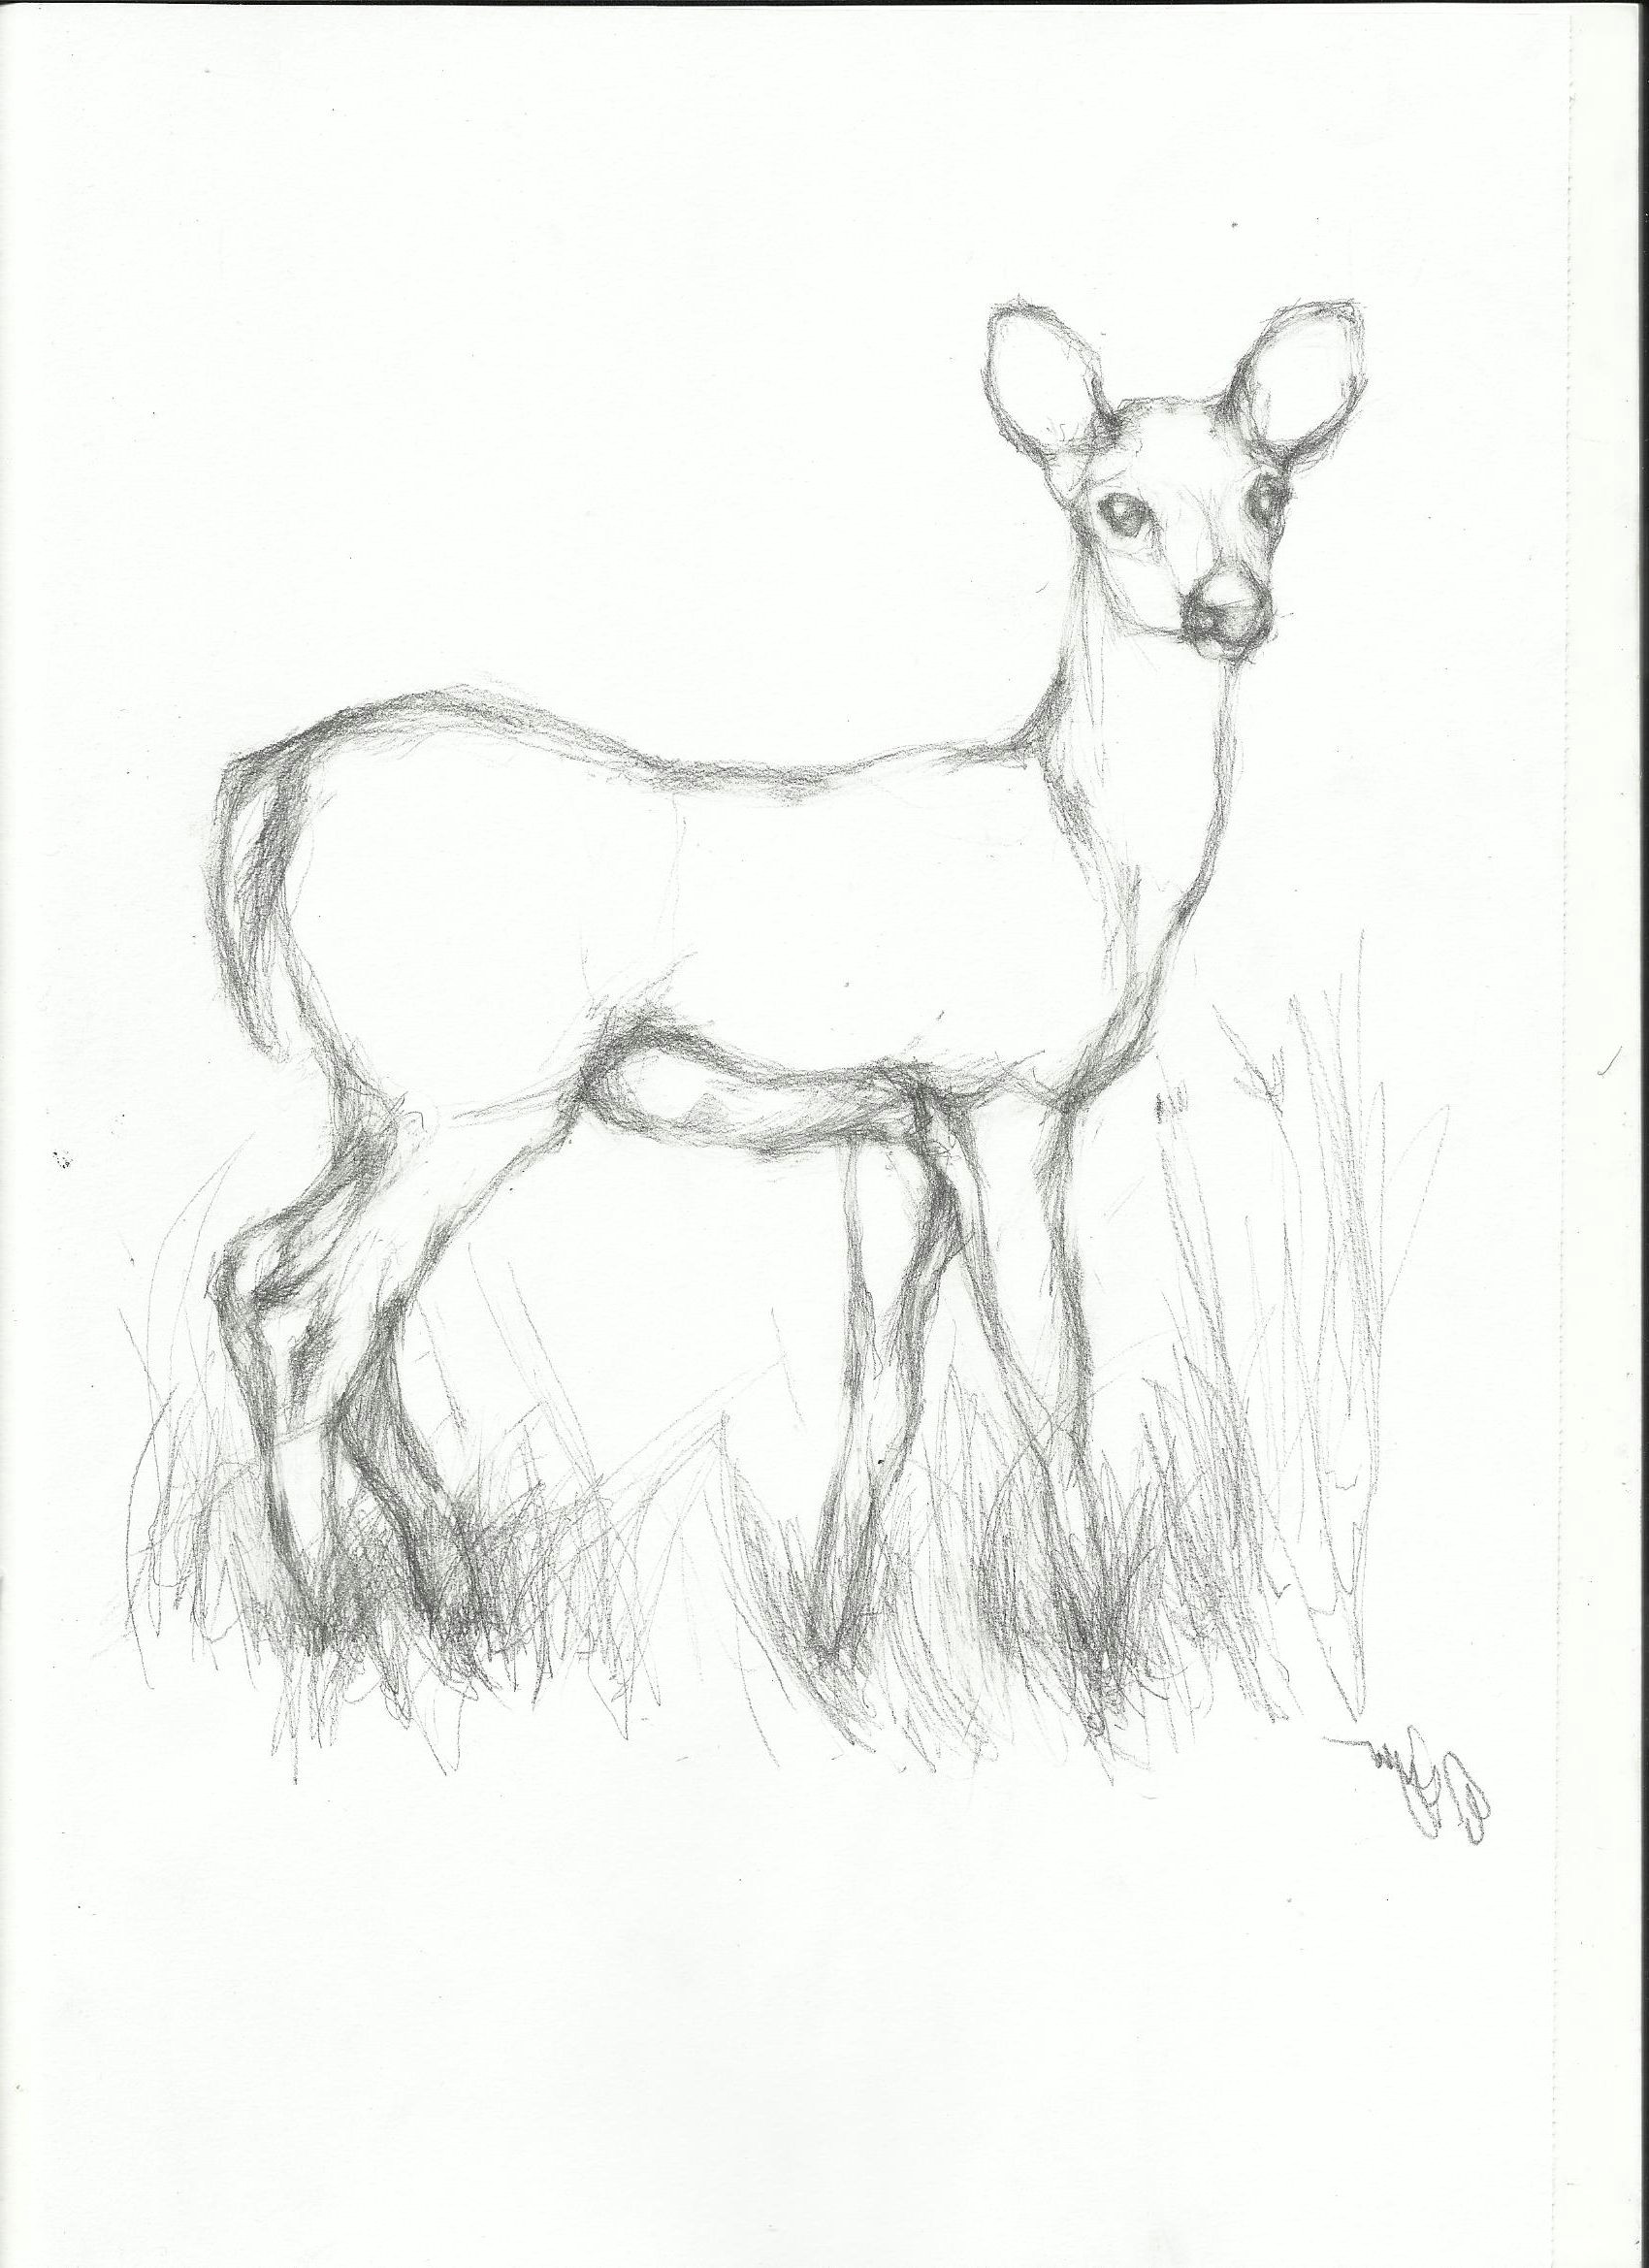 Animal Drawings for Beginners Pencil Easy Animal Sketch Drawing Animal Sketches